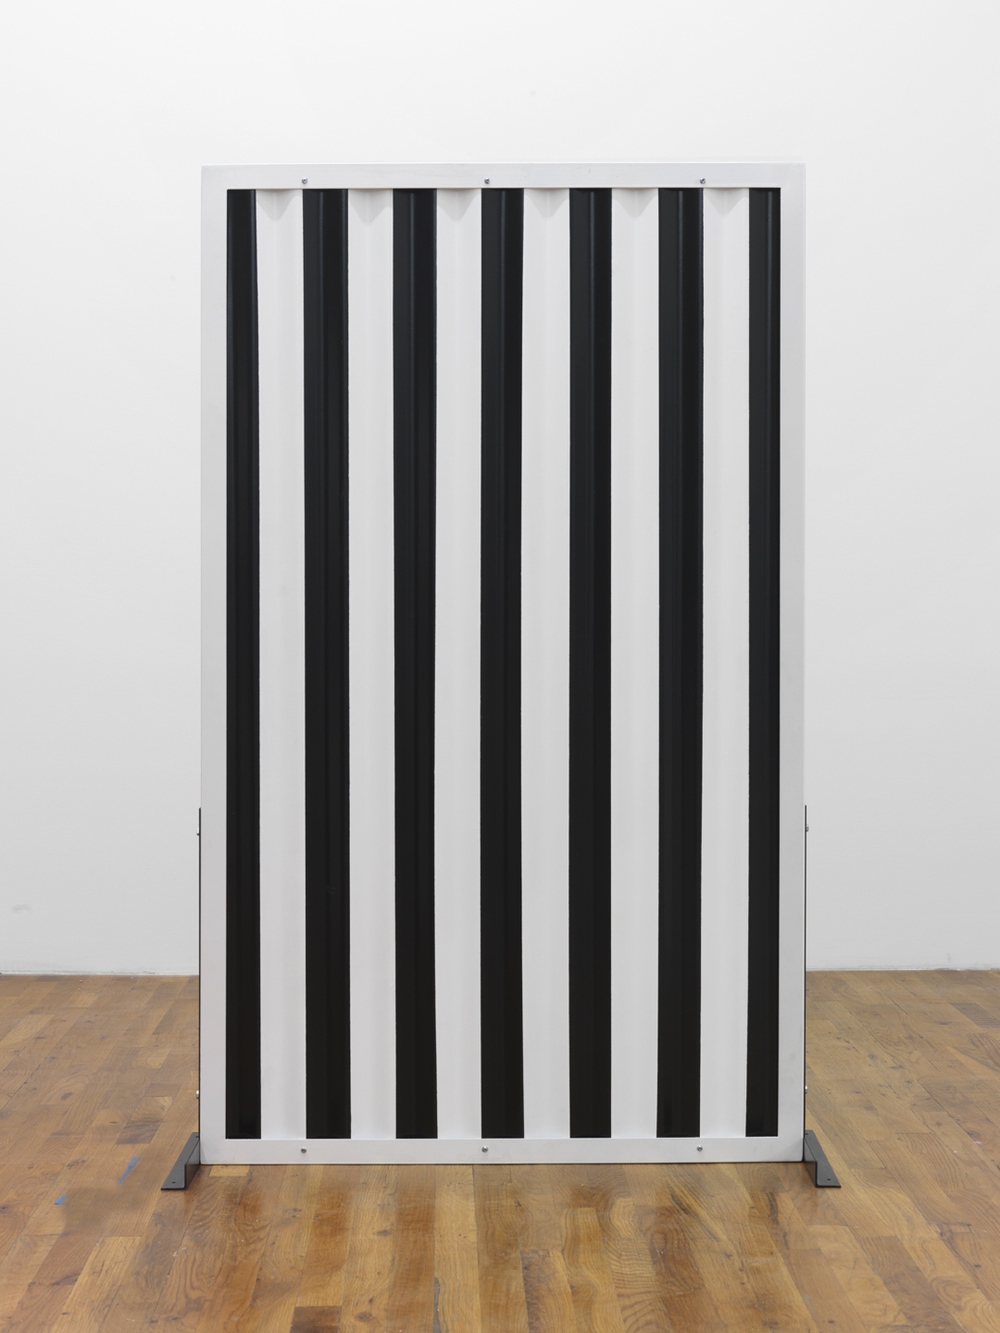 Standing Partition (vertical stripes)  2013 Steel, Hardware, Poly-acrylic paint 60 x 36 x 16 inches